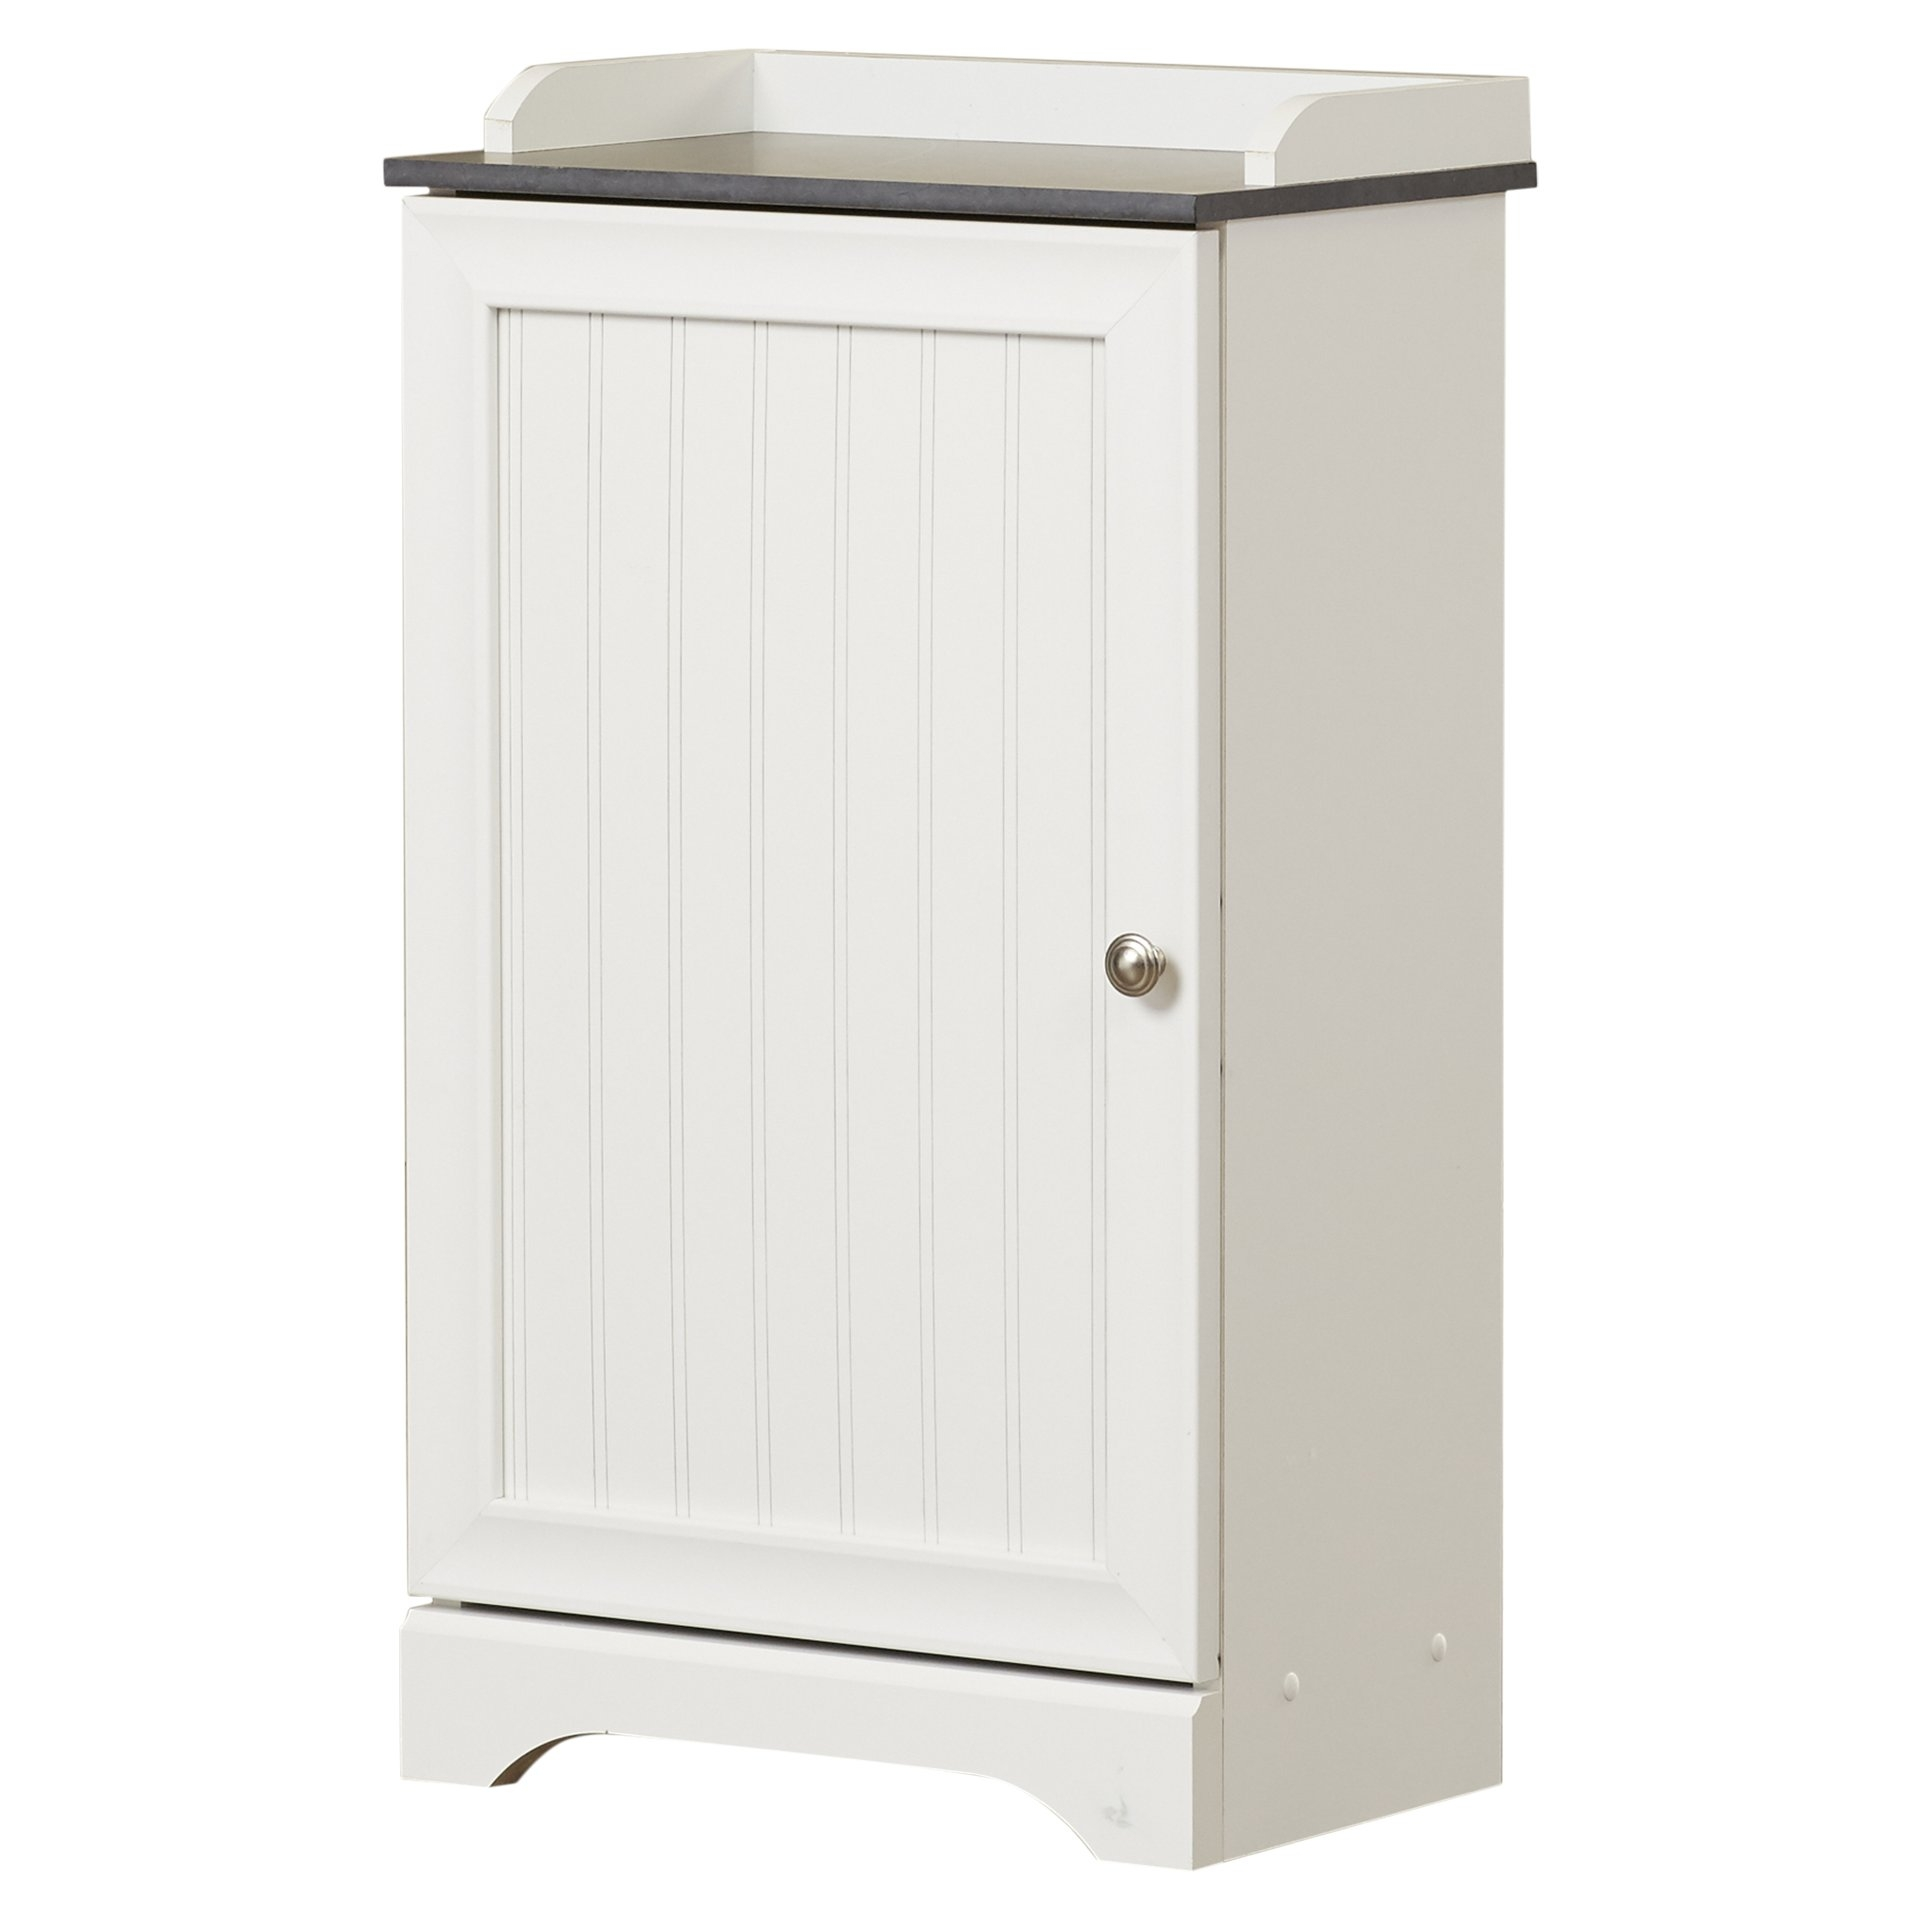 Images Bathroom Freestanding Cabinets